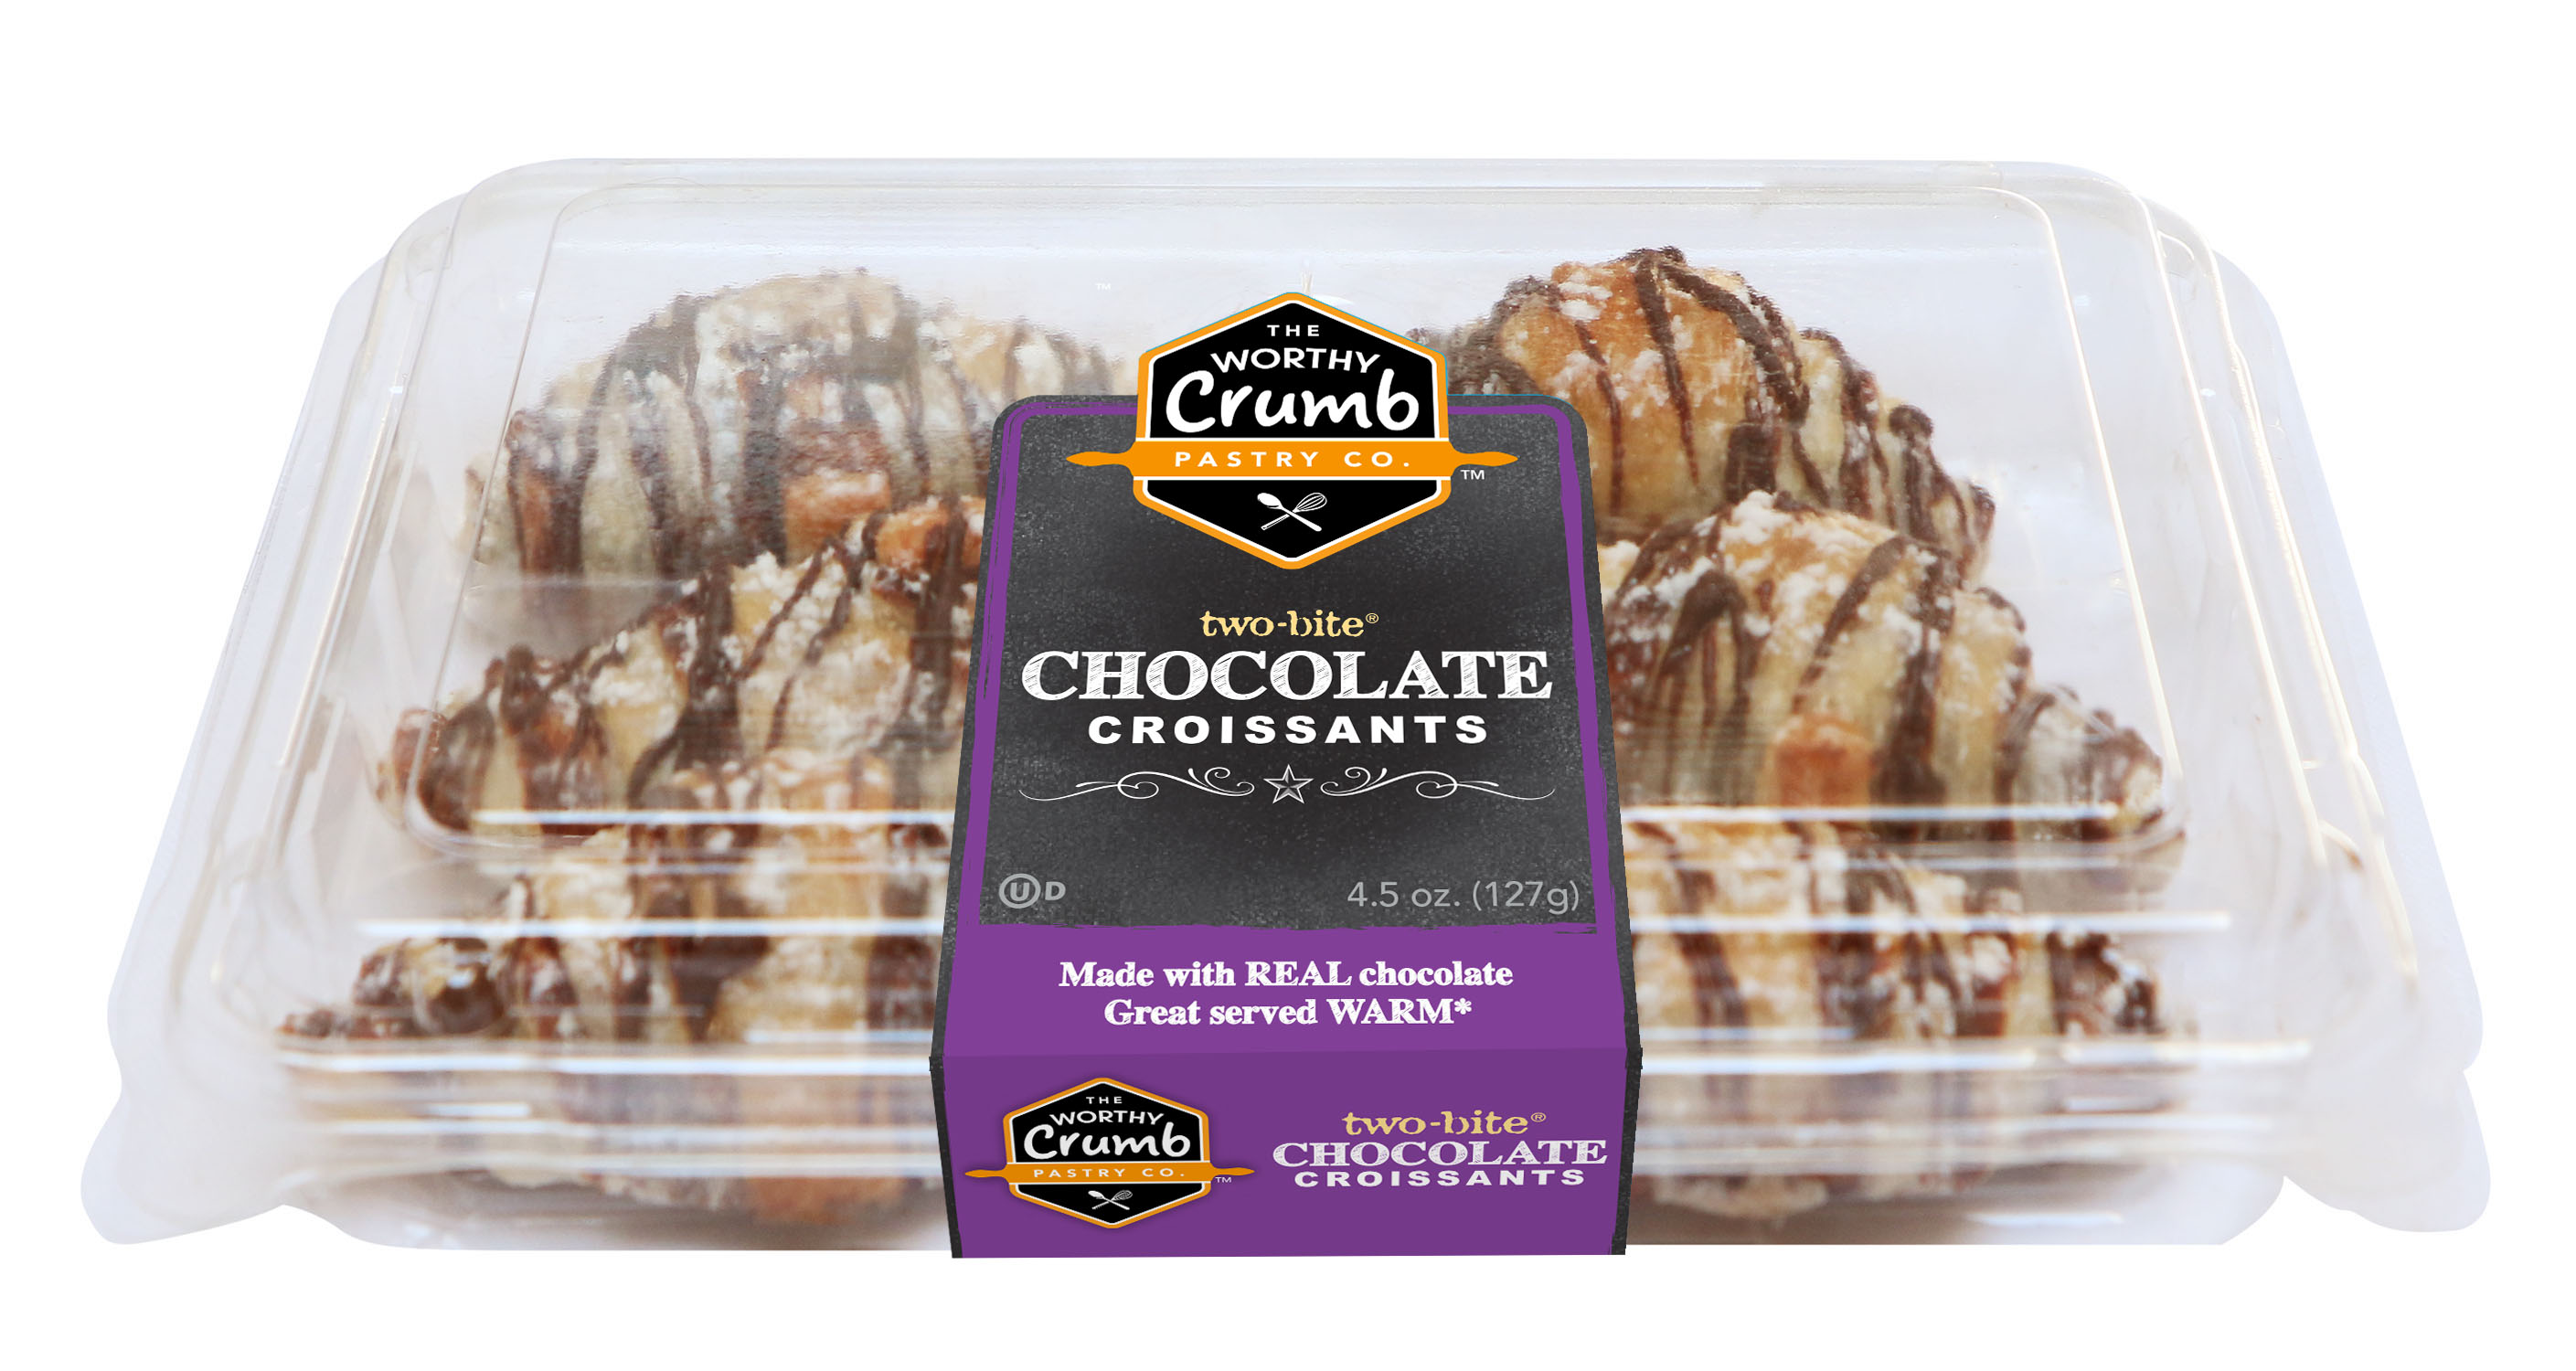 The Worthy Crumb Chocolate Croissants- 6 Pack